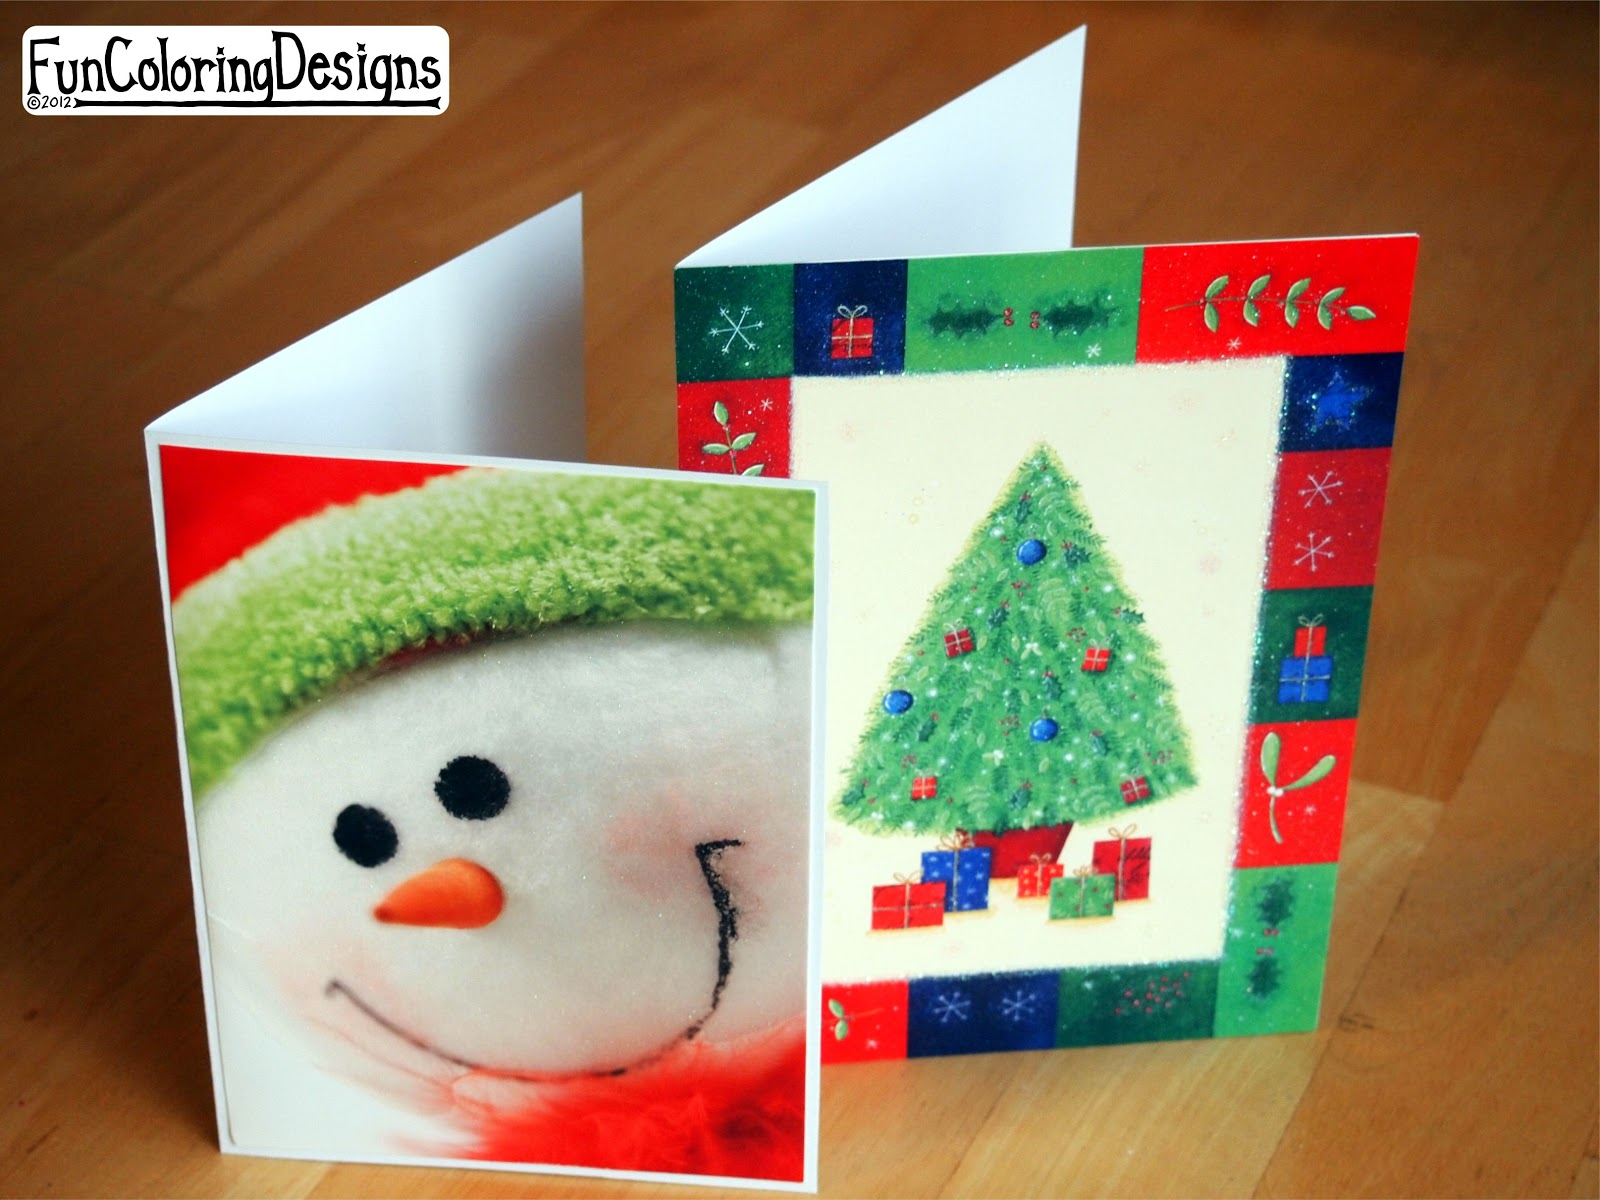 Fun Coloring Designs: DIY Upcycle Old Christmas Cards - Holidy Ideas